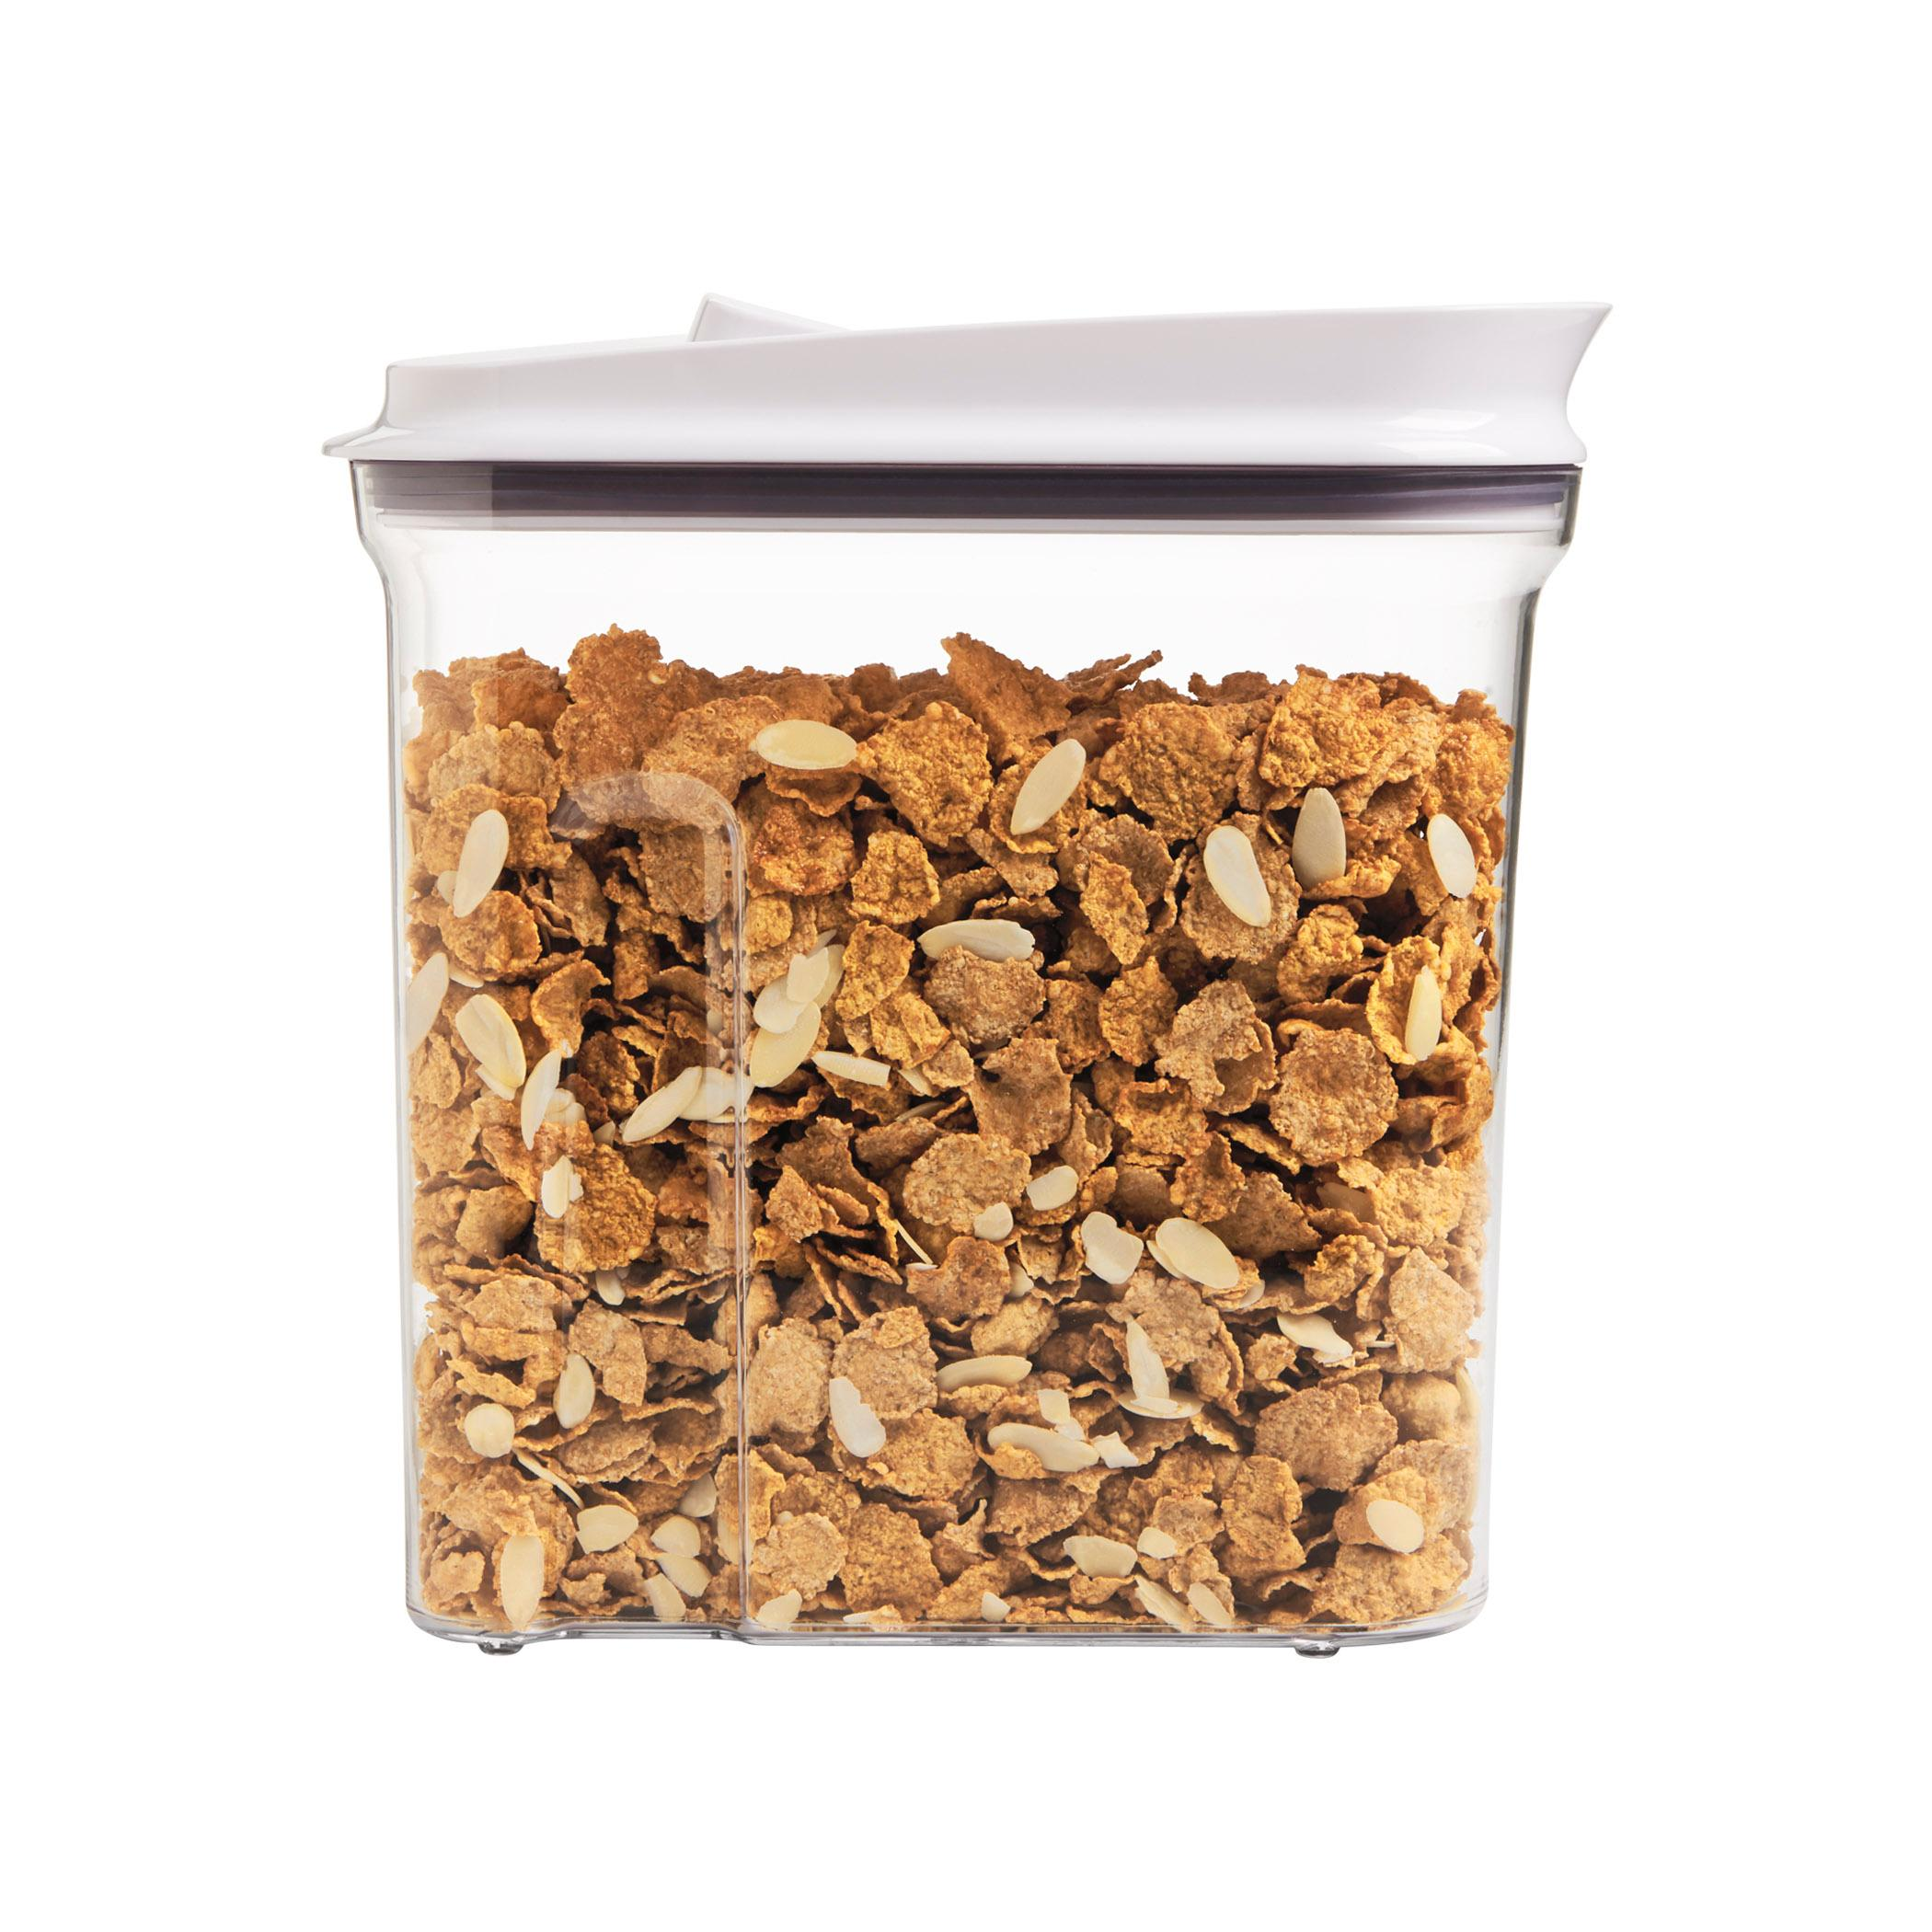 Amazon.com: OXO Good Grips Airtight POP Large Cereal